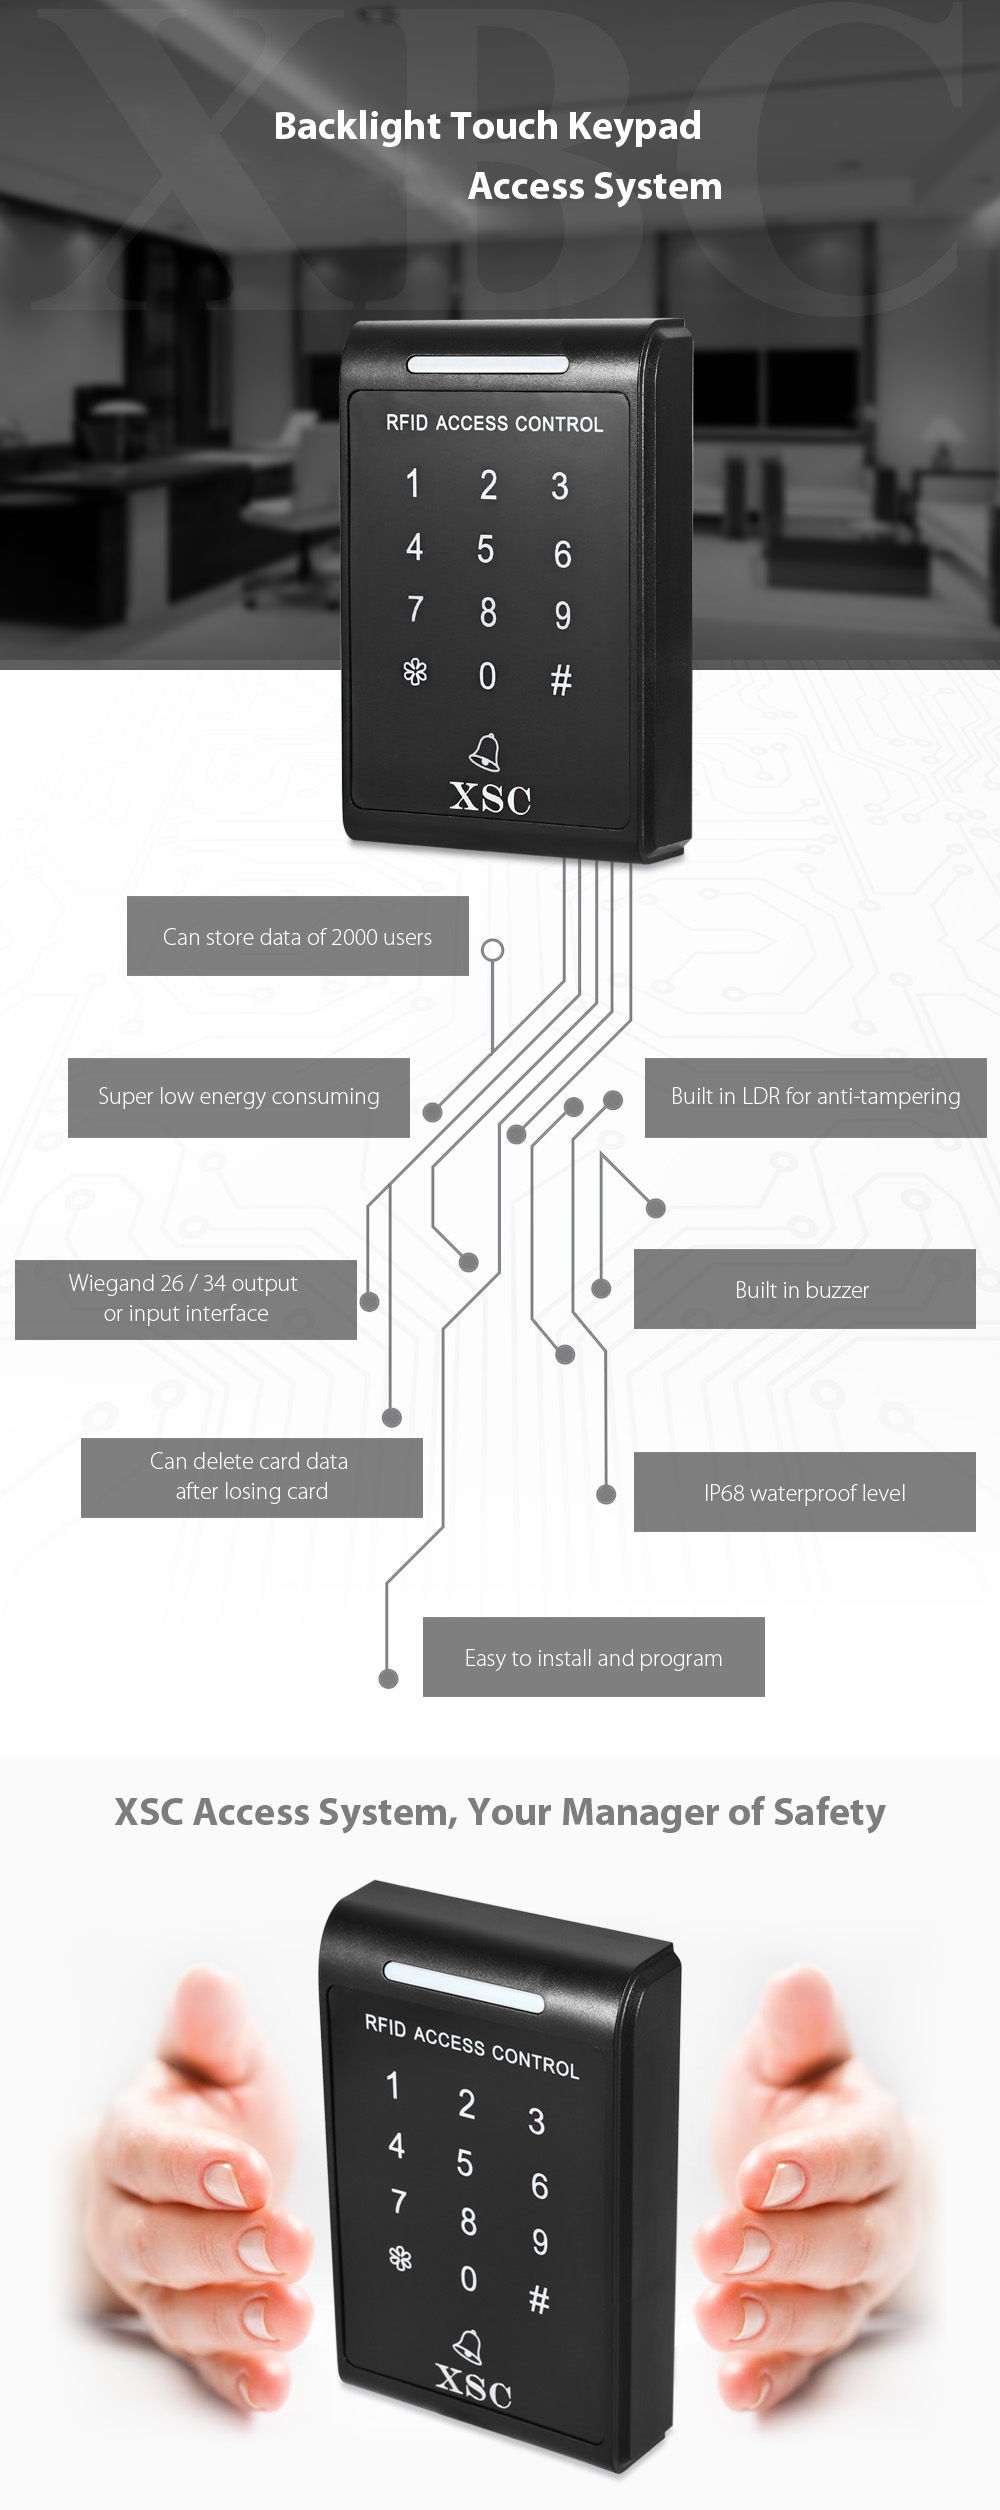 XSC 2000 Users Access Control Keypad System Support Password / Inductive Card Built in Buzzer